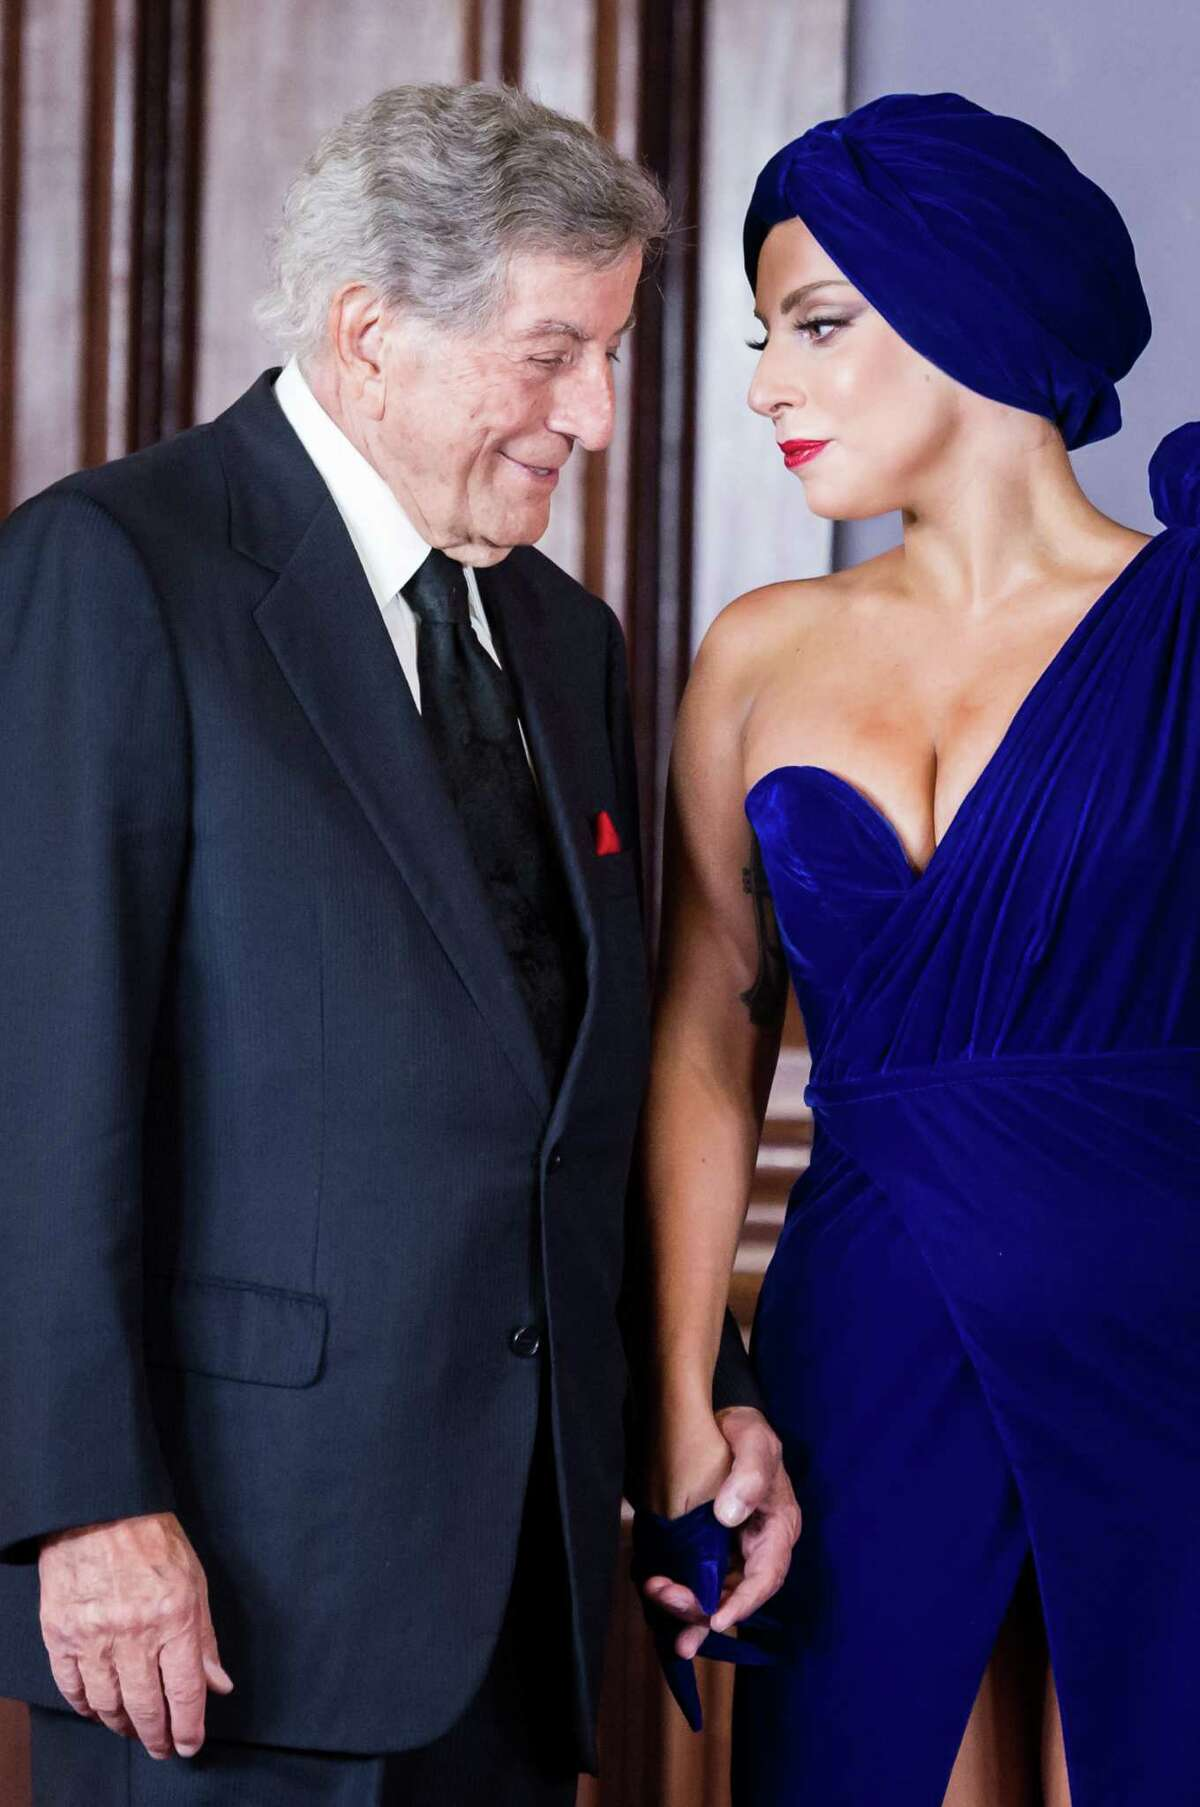 Lady Gaga, right, and Tony Bennett arrive for a media event at the Brussels' city hall on Monday Sept. 22 , 2014. Lady Gaga and Tony Bennett will give a short concert on the Brussels' Grand Place for 6500 clients of mobile operator Mobistar.